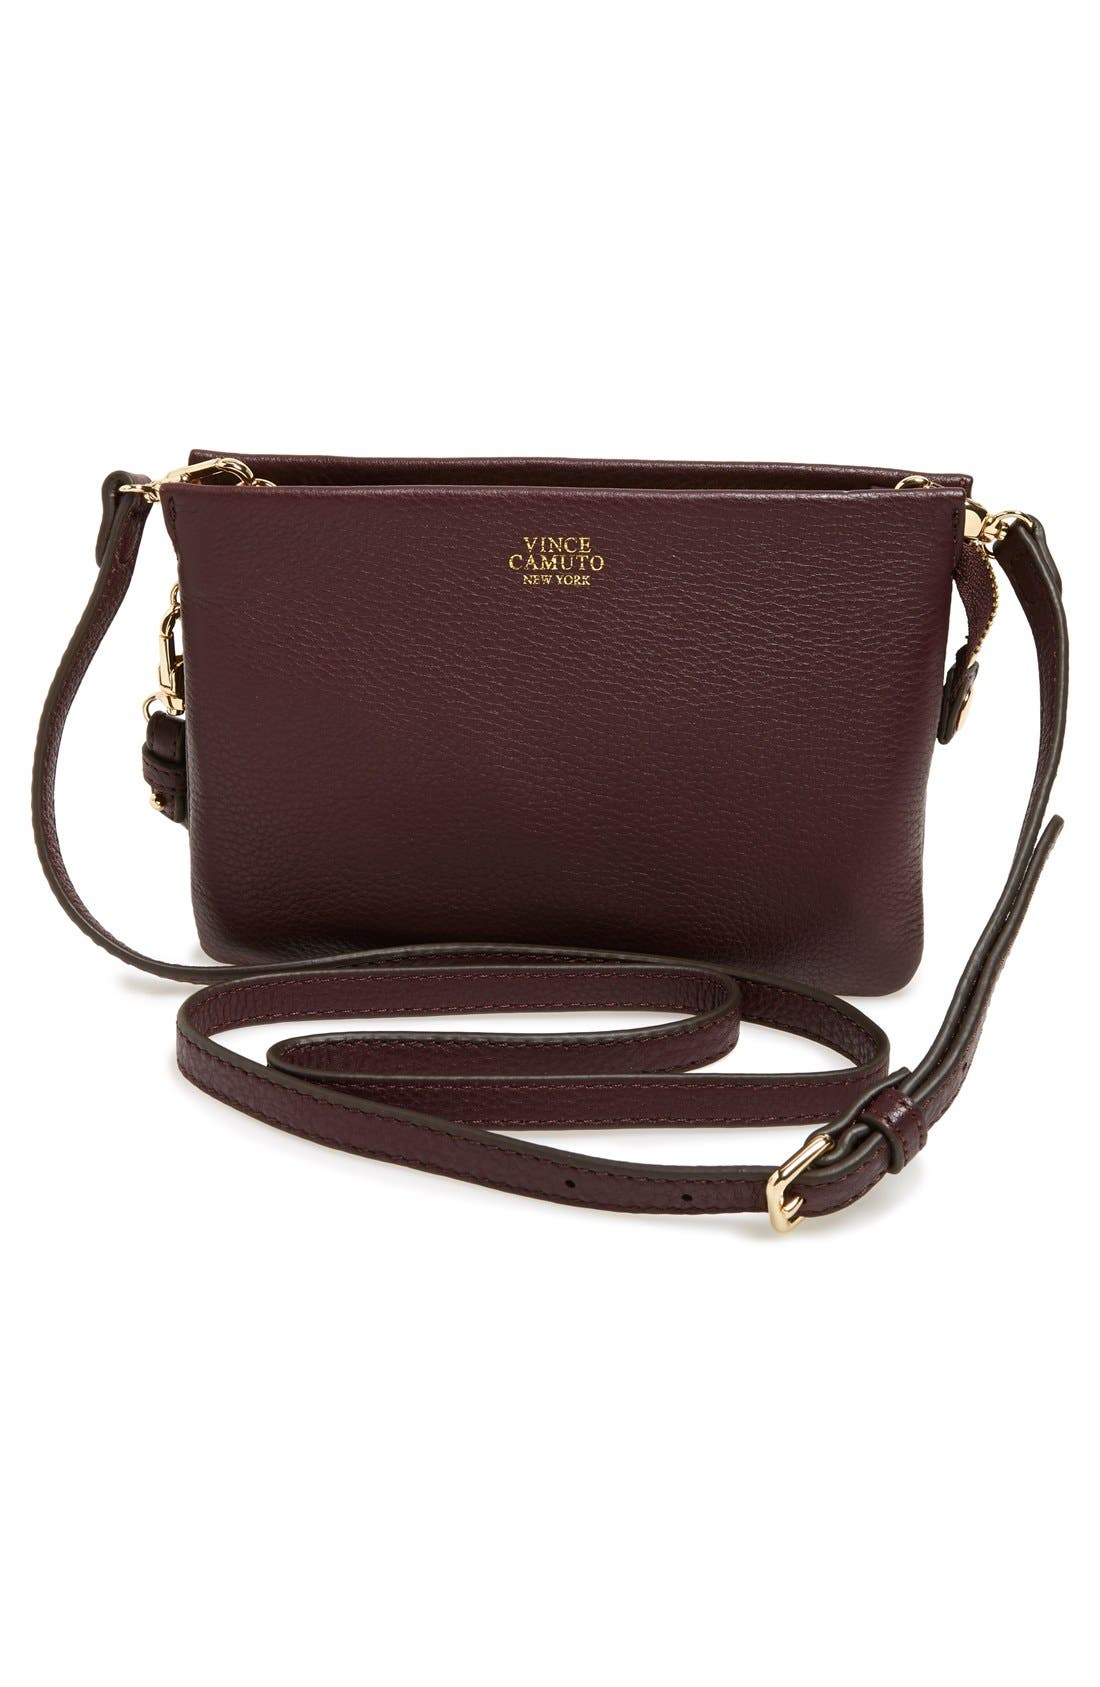 'Cami' Leather Crossbody Bag,                             Main thumbnail 10, color,